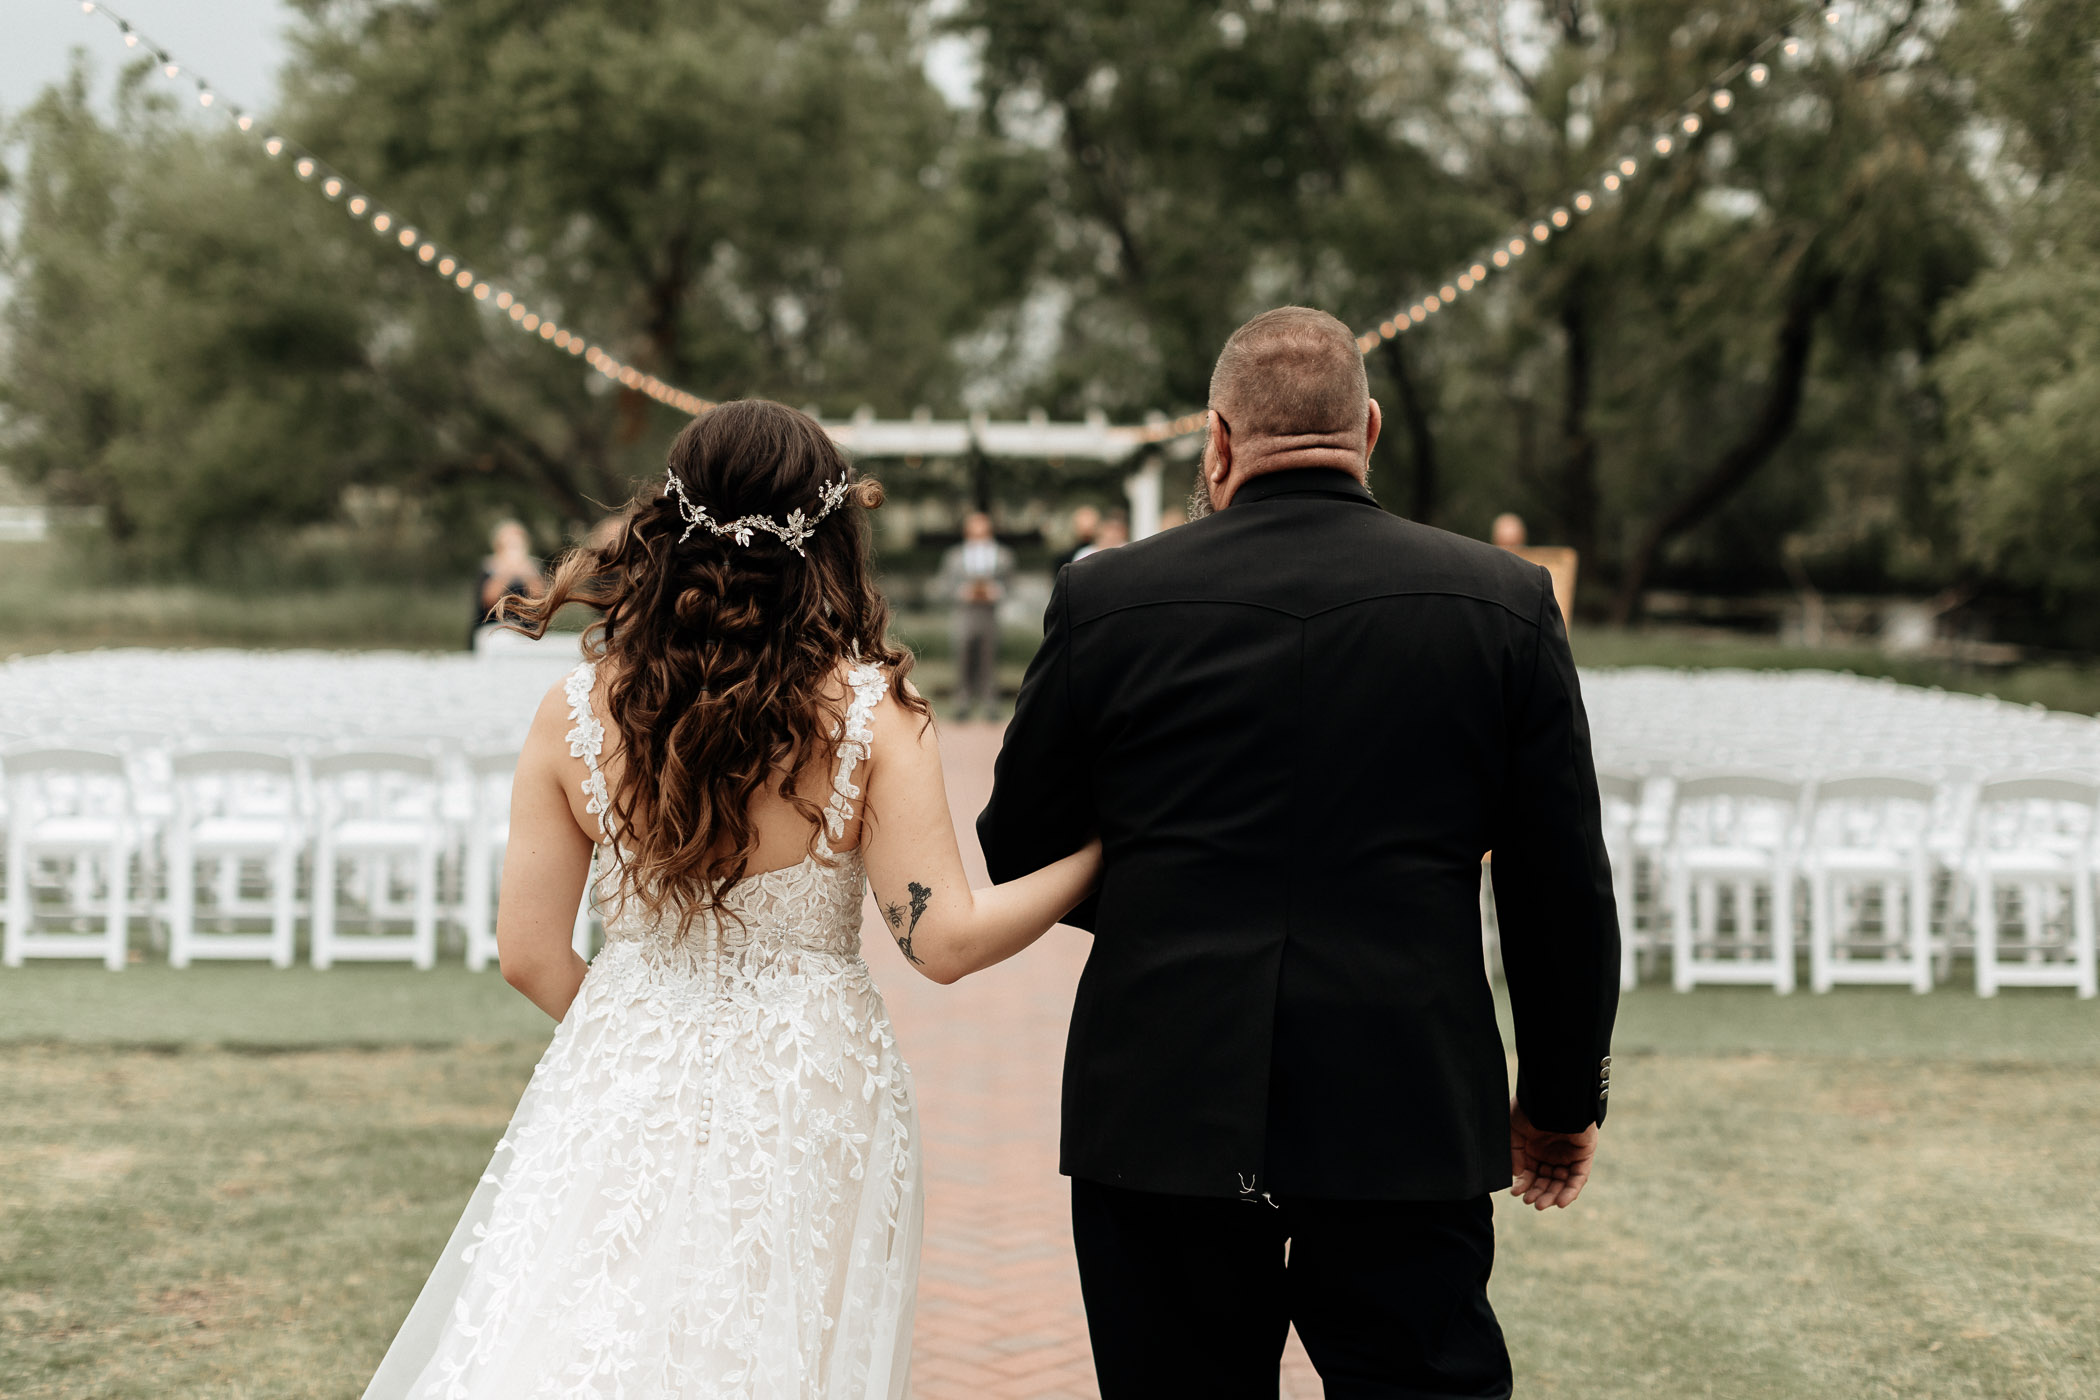 Brides dad walking her down the aisle on her wedding day in north Texas